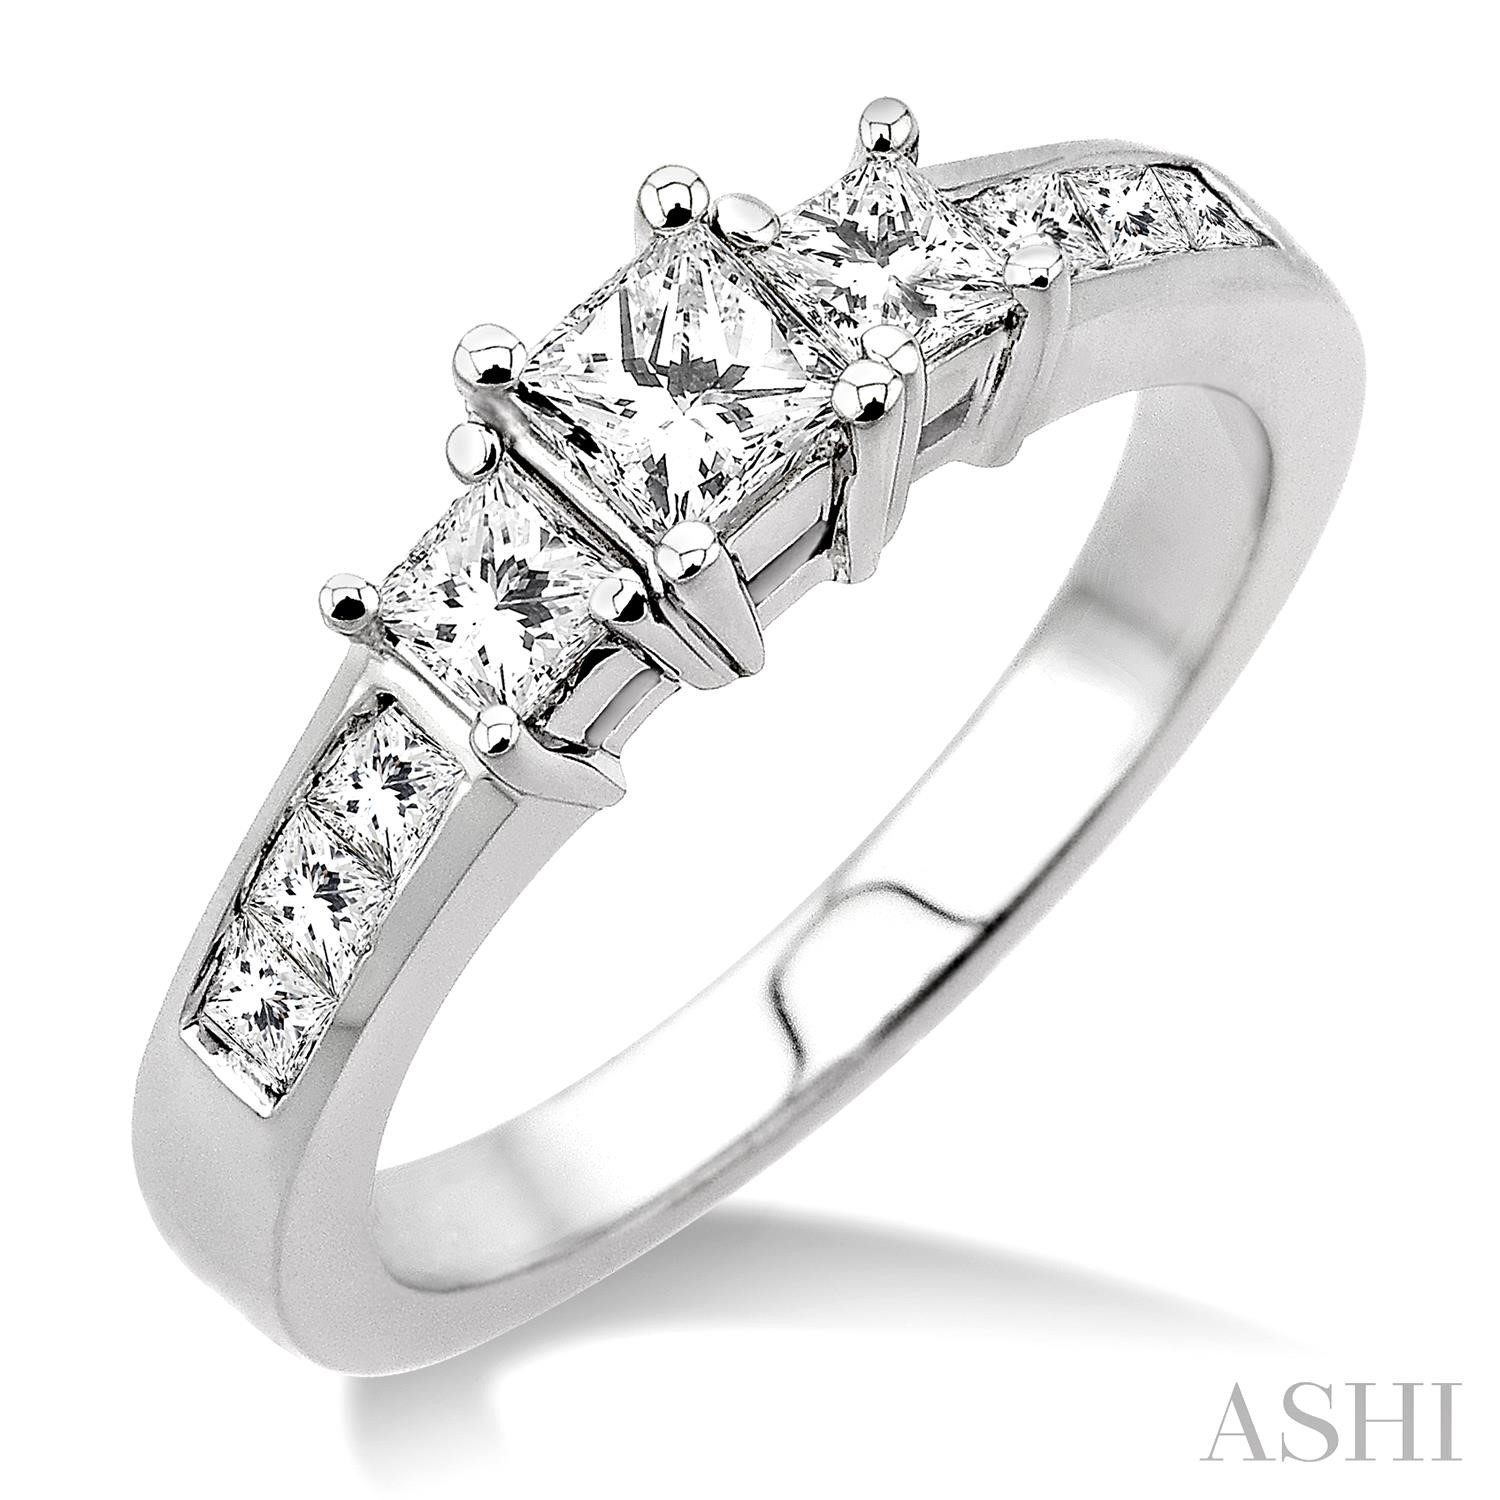 PAST PRESENT & FUTURE DIAMOND ENGAGEMENT RING